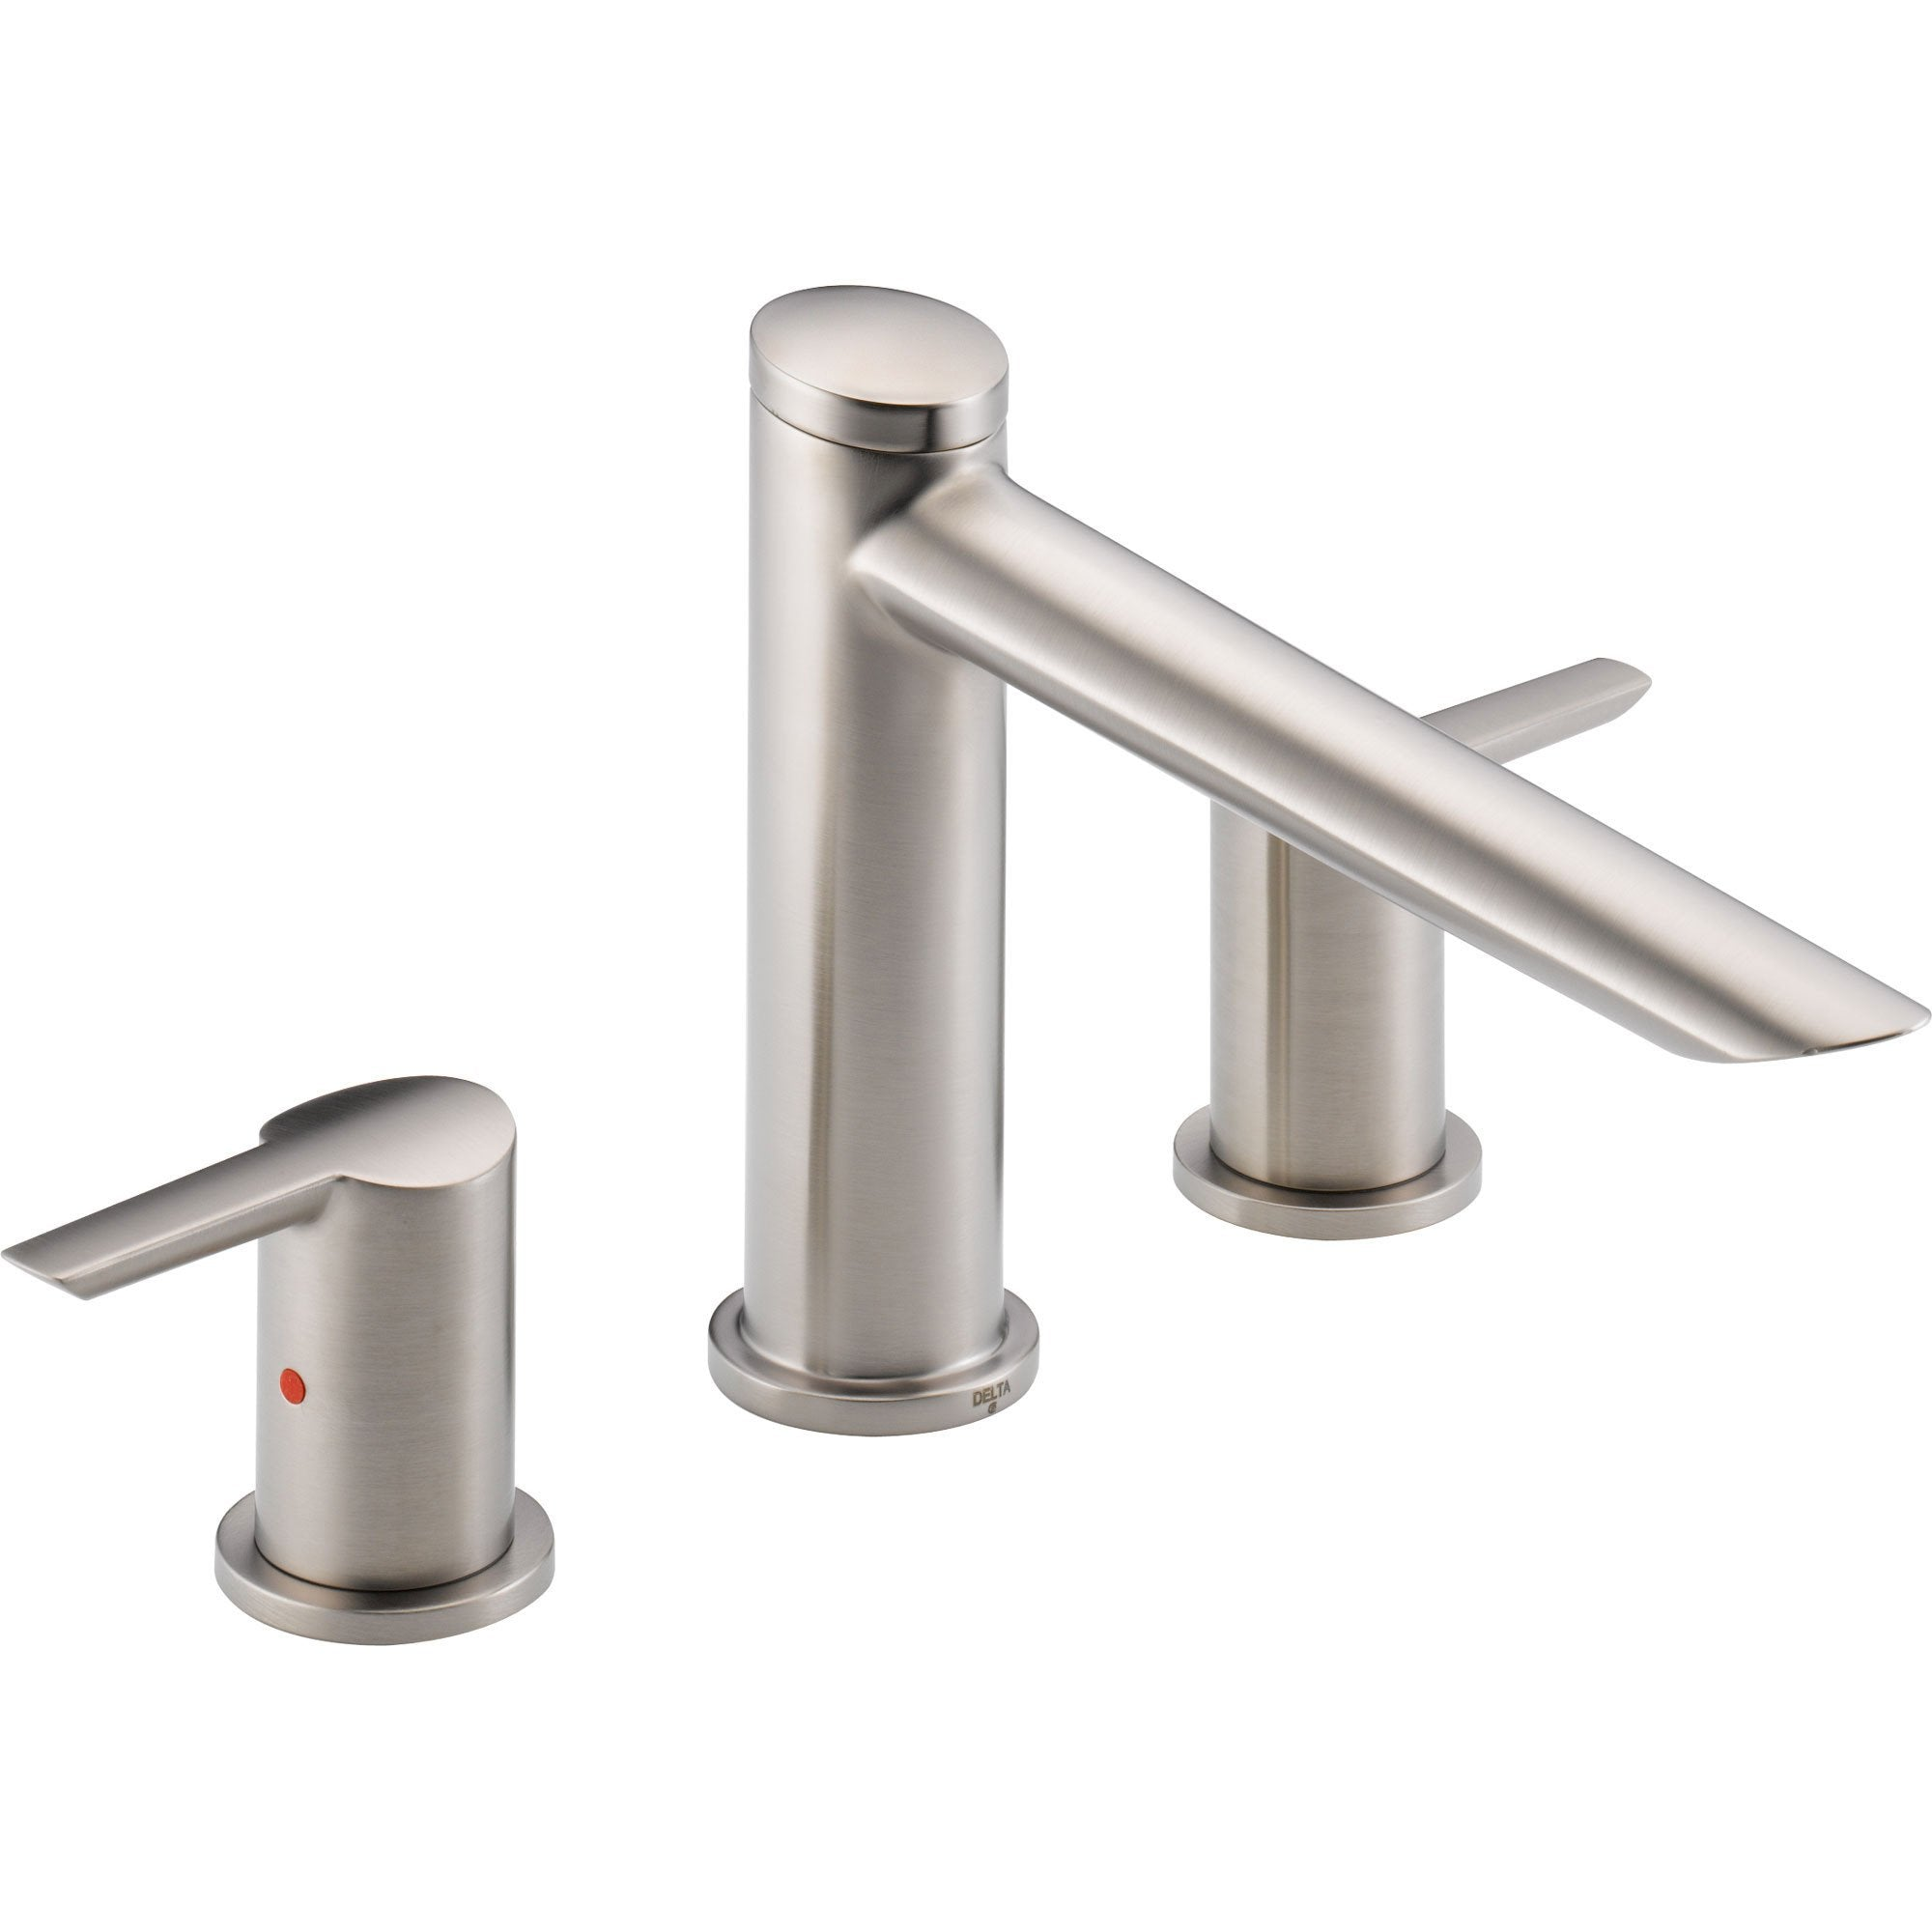 Delta Compel Modern Stainless Steel Finish Roman Tub Filler Faucet Trim 584058